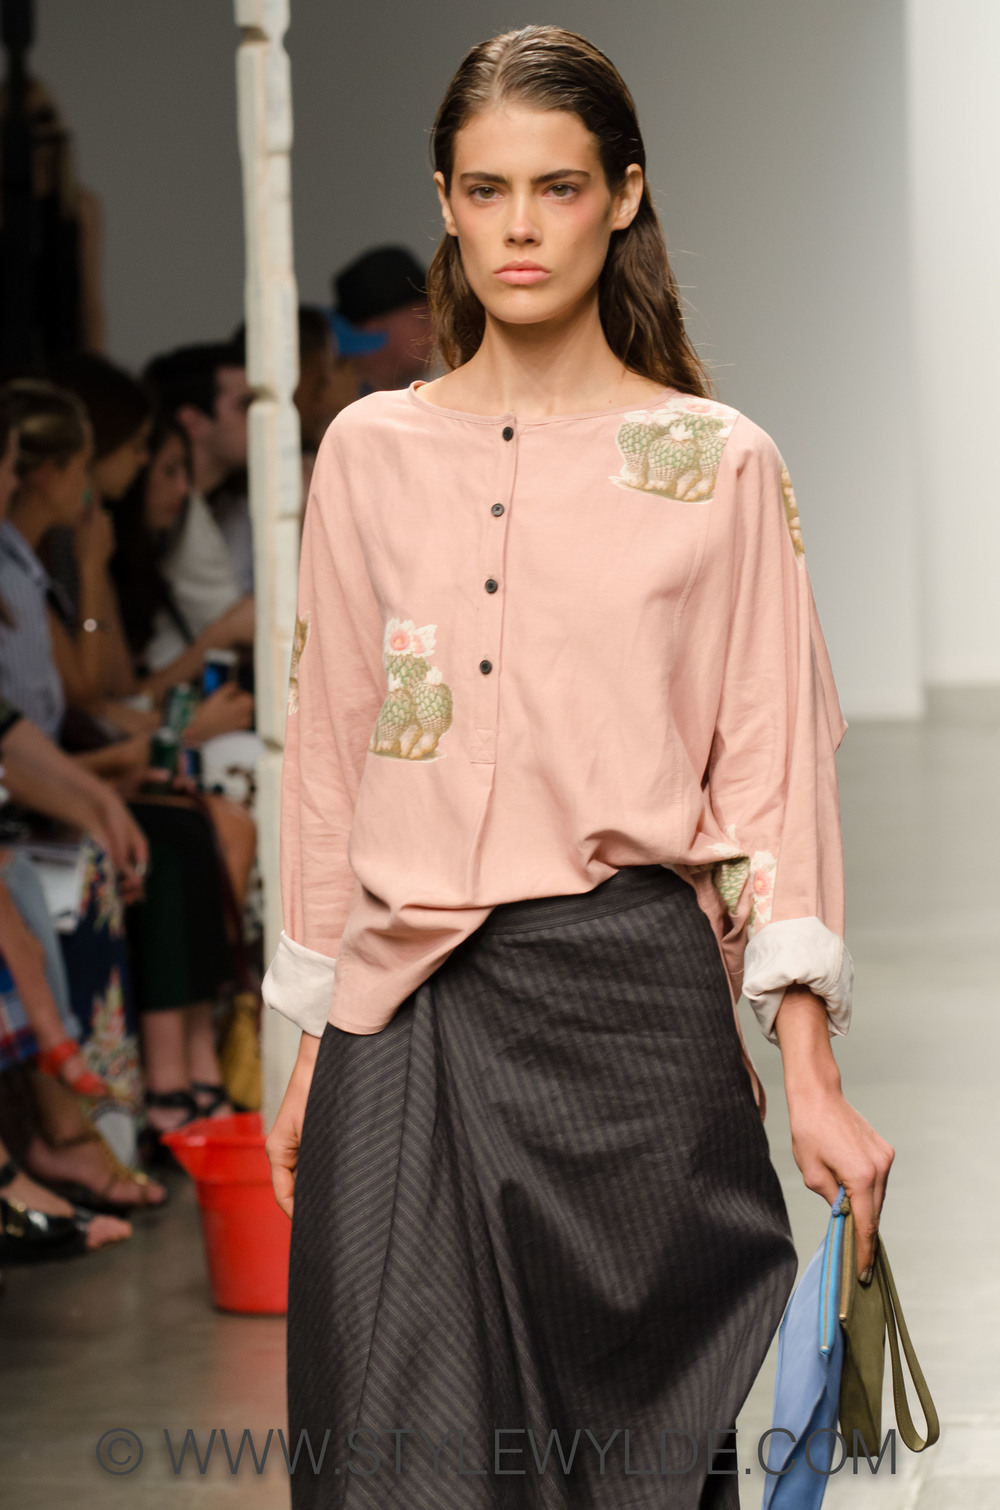 StyleWylde_Creatures_FOH_SS15 (5 of 49).jpg